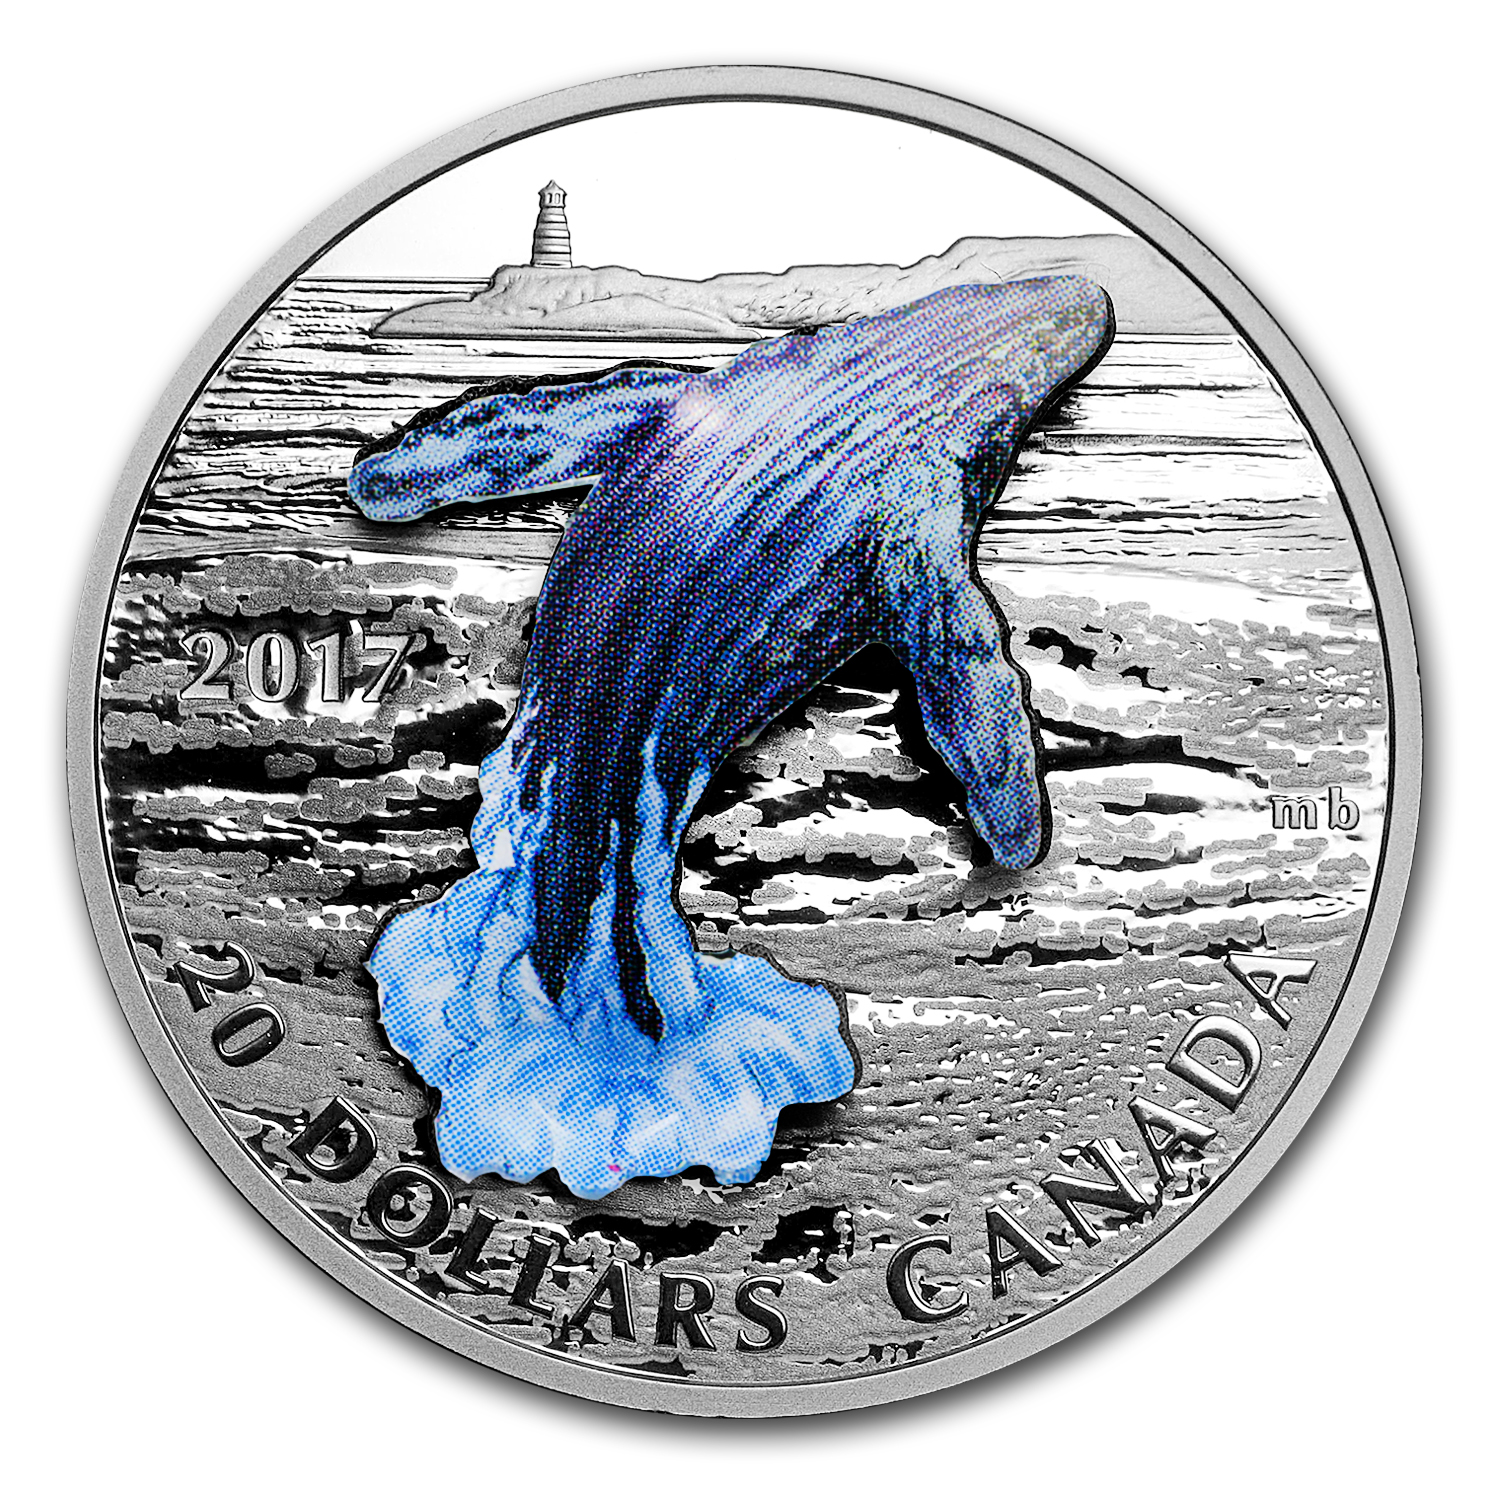 2017 1 oz Silver Proof $20 3-Dimensional Breaching Whale